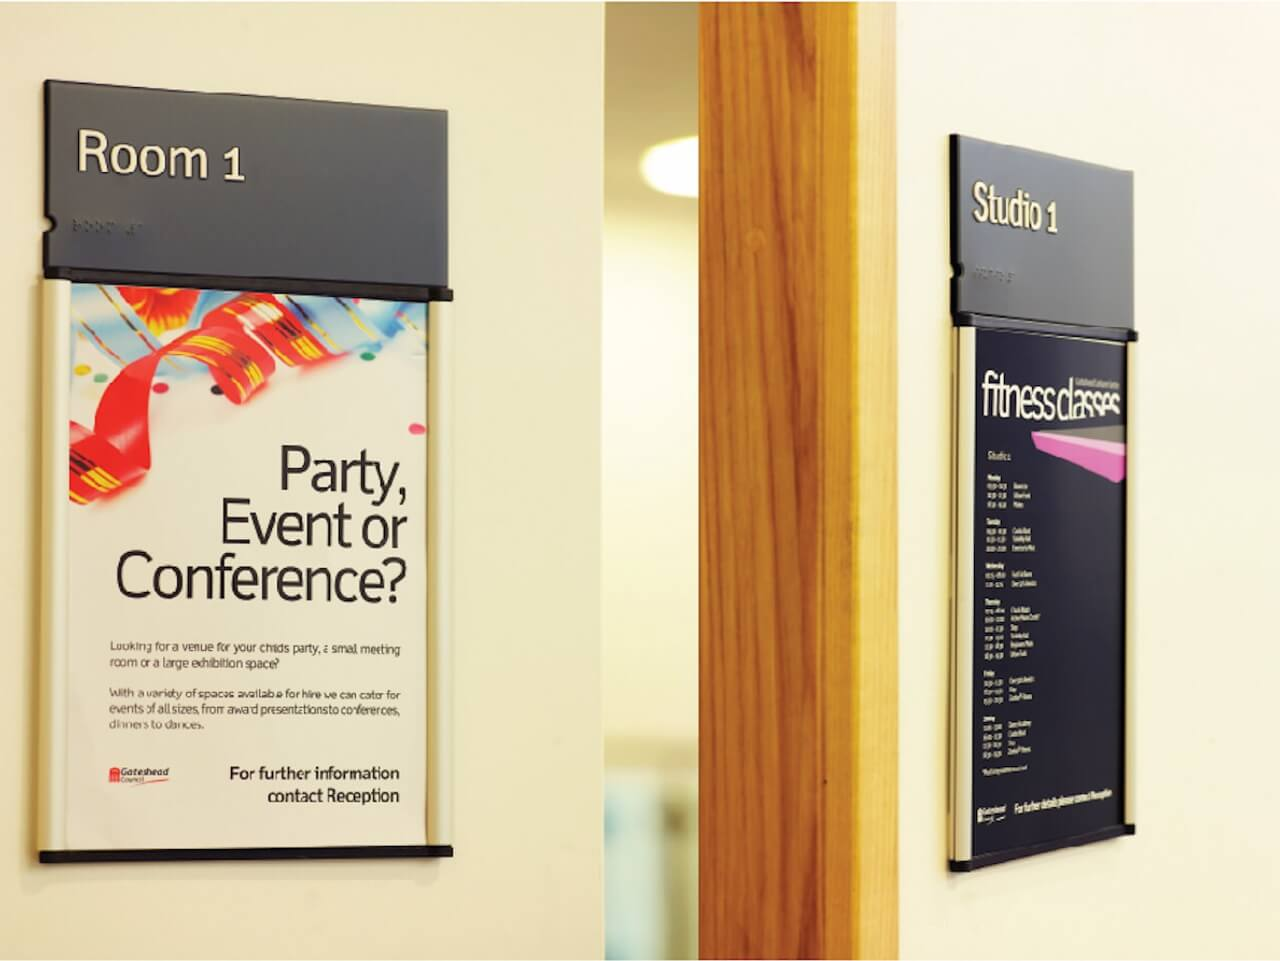 Paper inserts provide flexible and easily updatable signage and information graphics for leisure centres